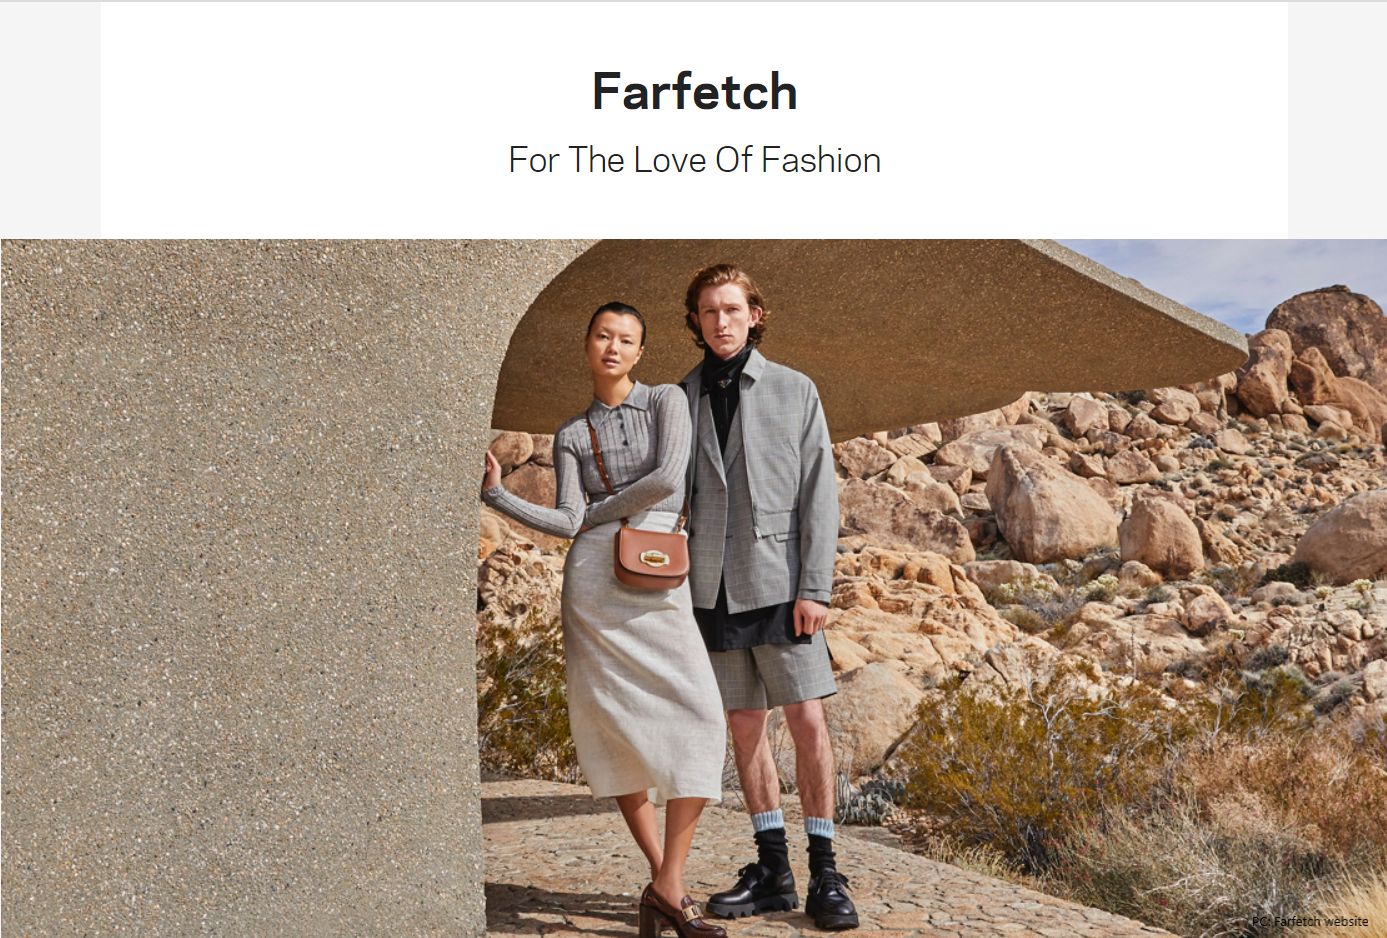 Farfetch records growth amidst crisis